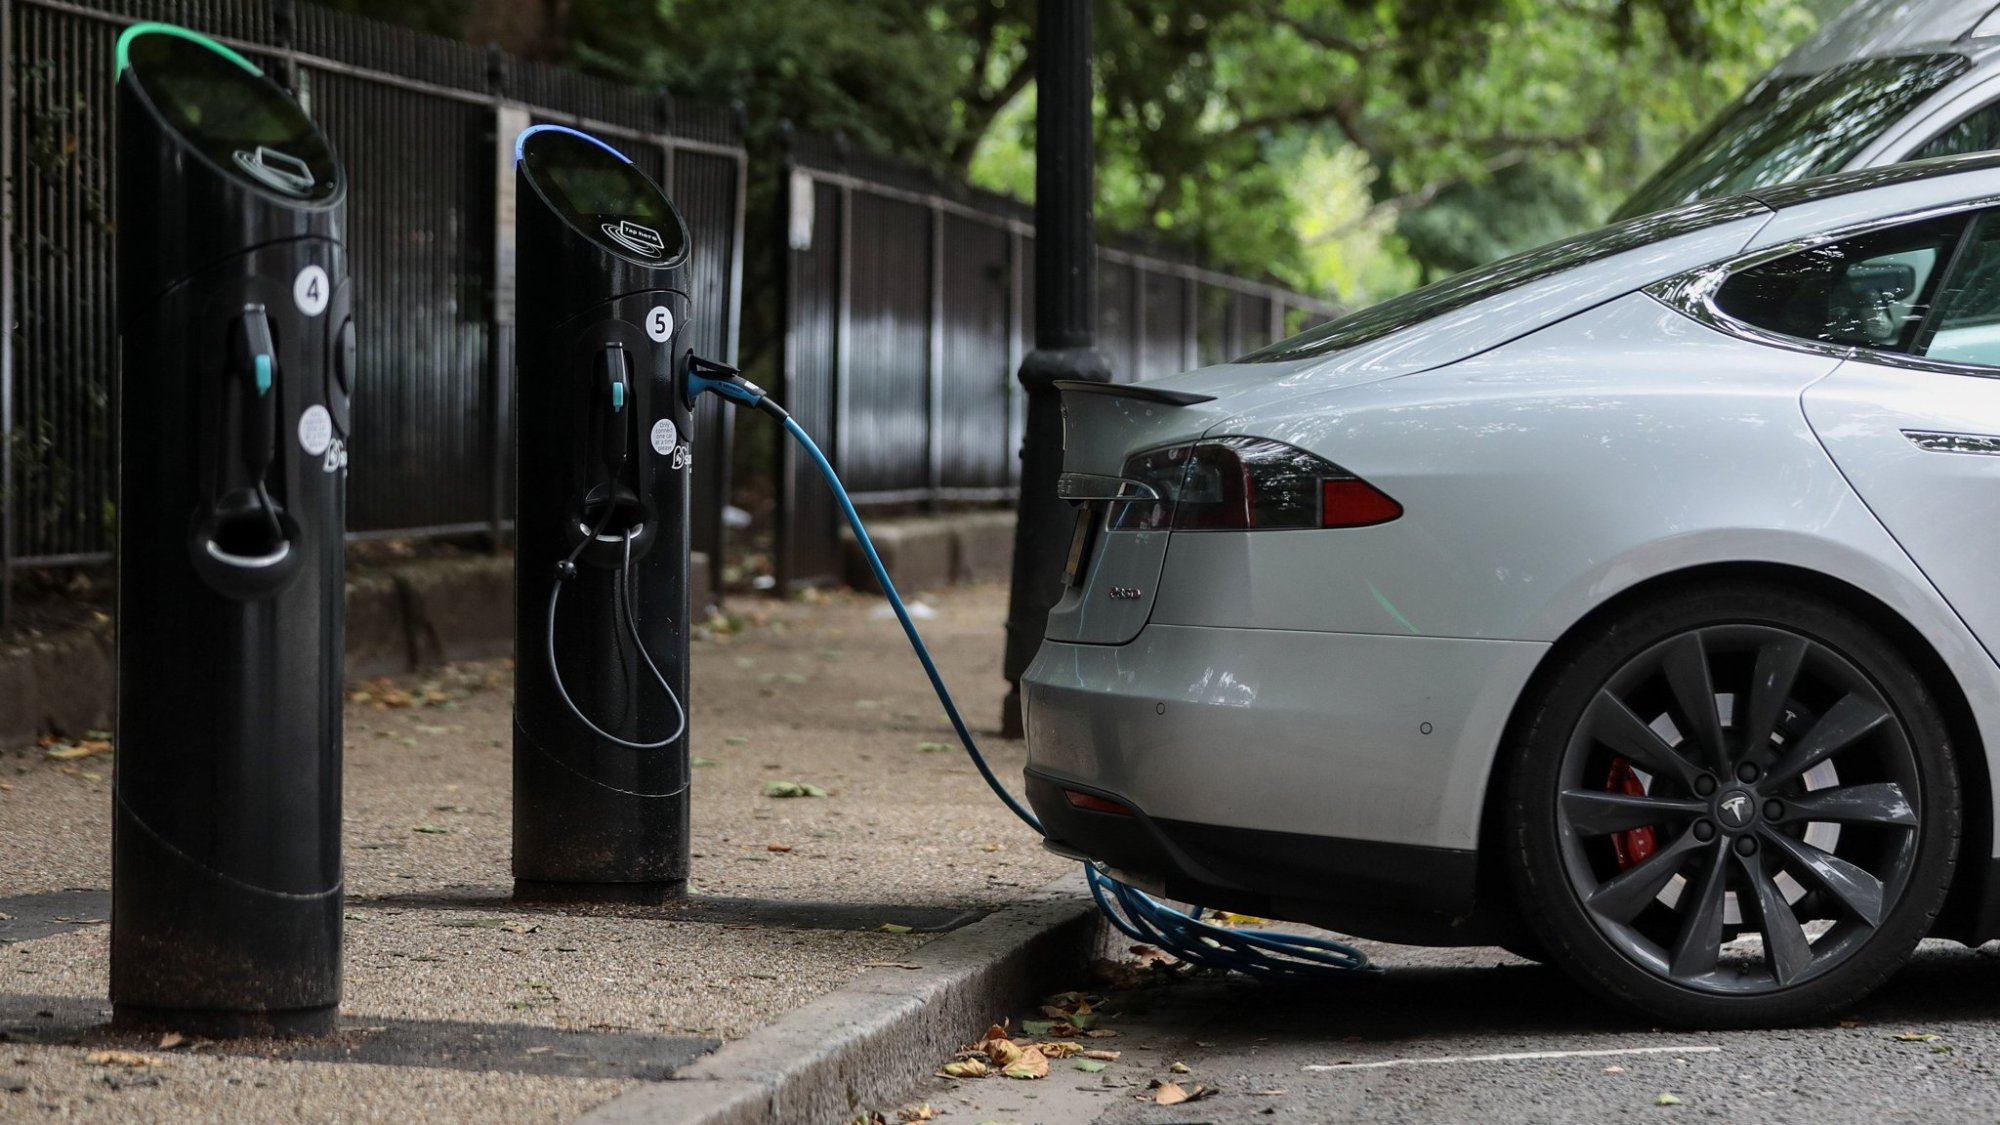 hight resolution of charge electric car but don t boil kettle says national grid